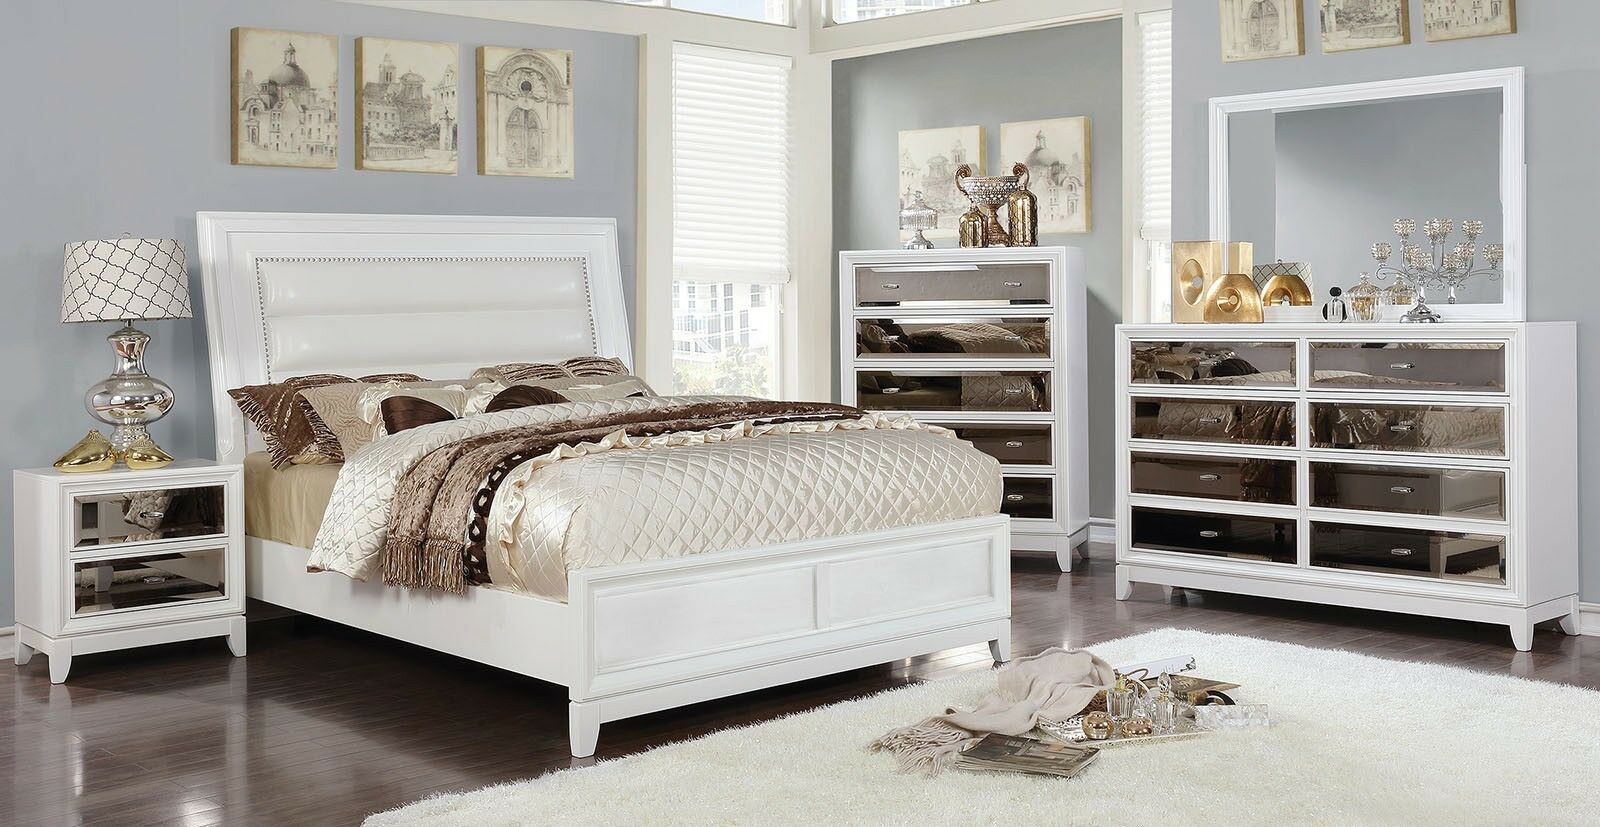 White Color 1piece Queen Size Bed